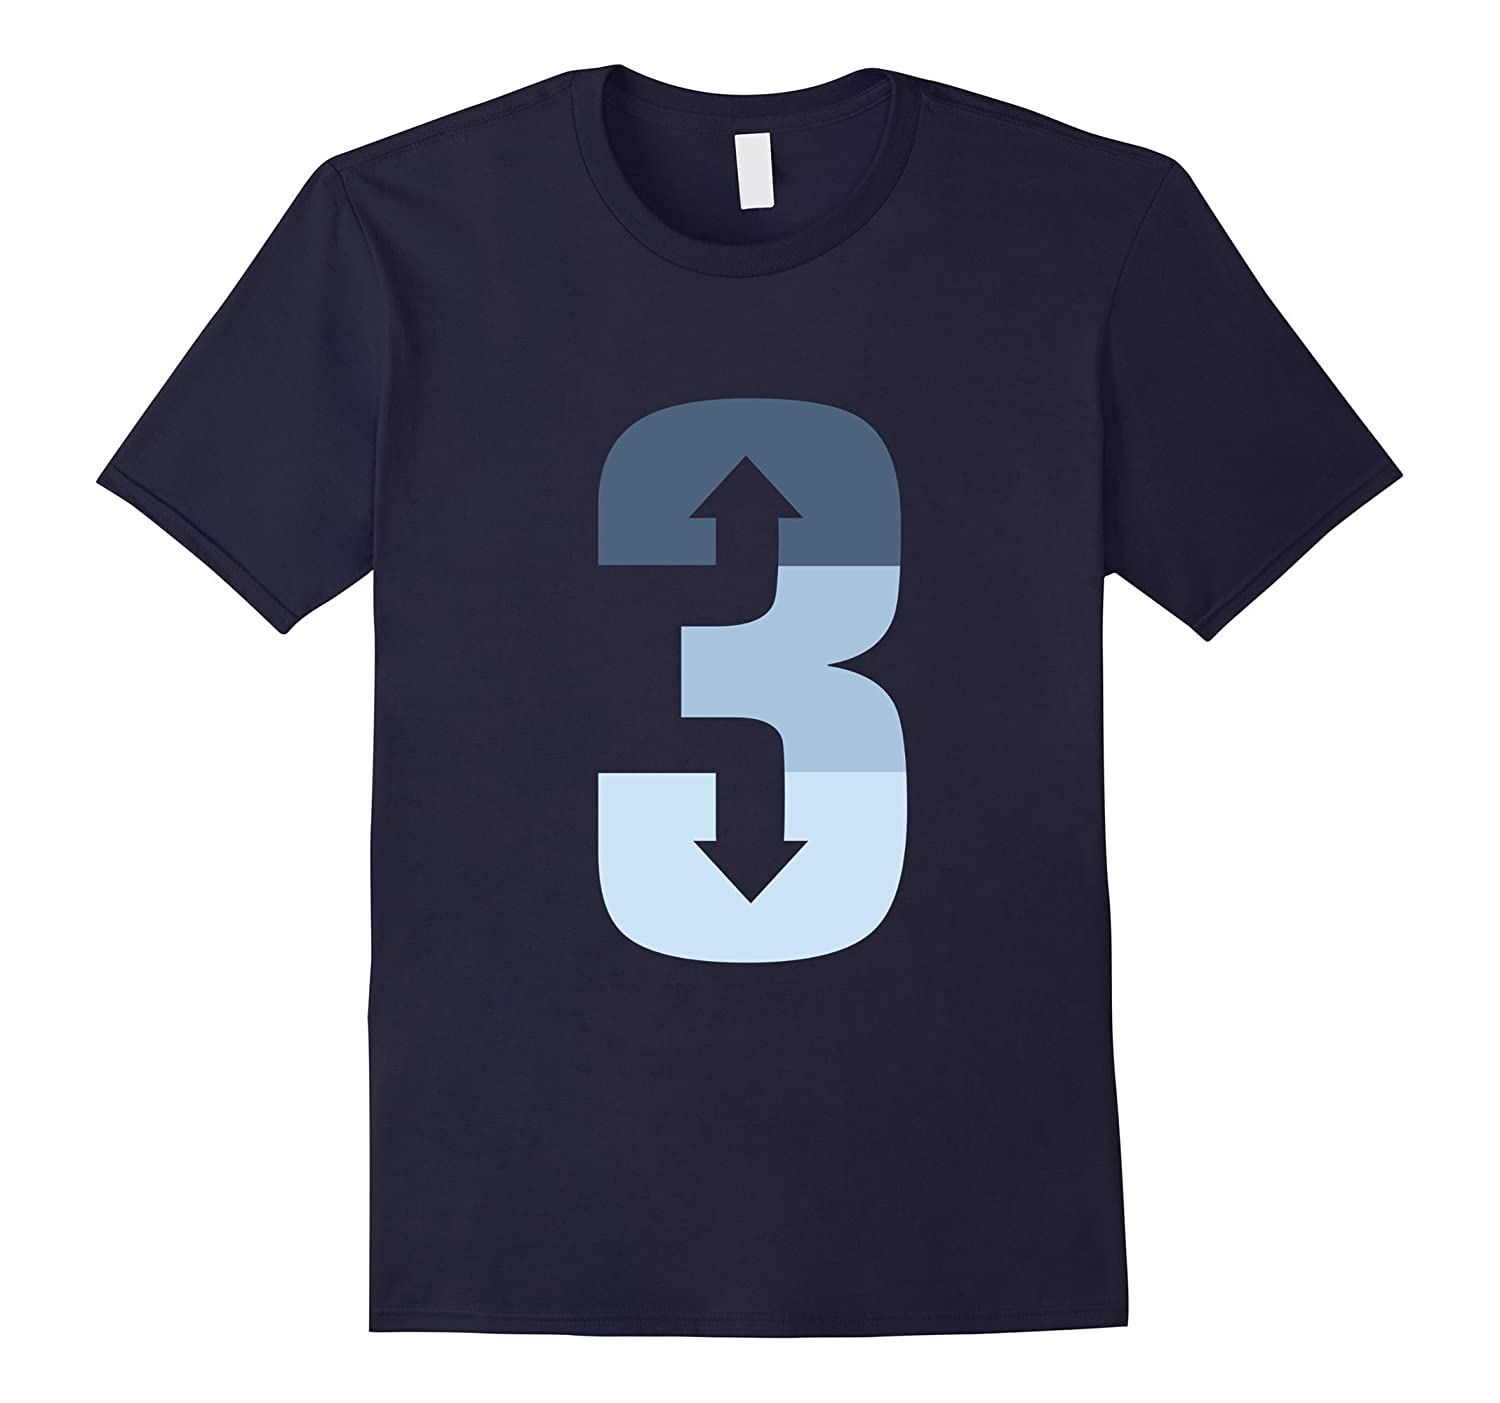 3 up 3 down T shirt  Baseball T-shirt-BN